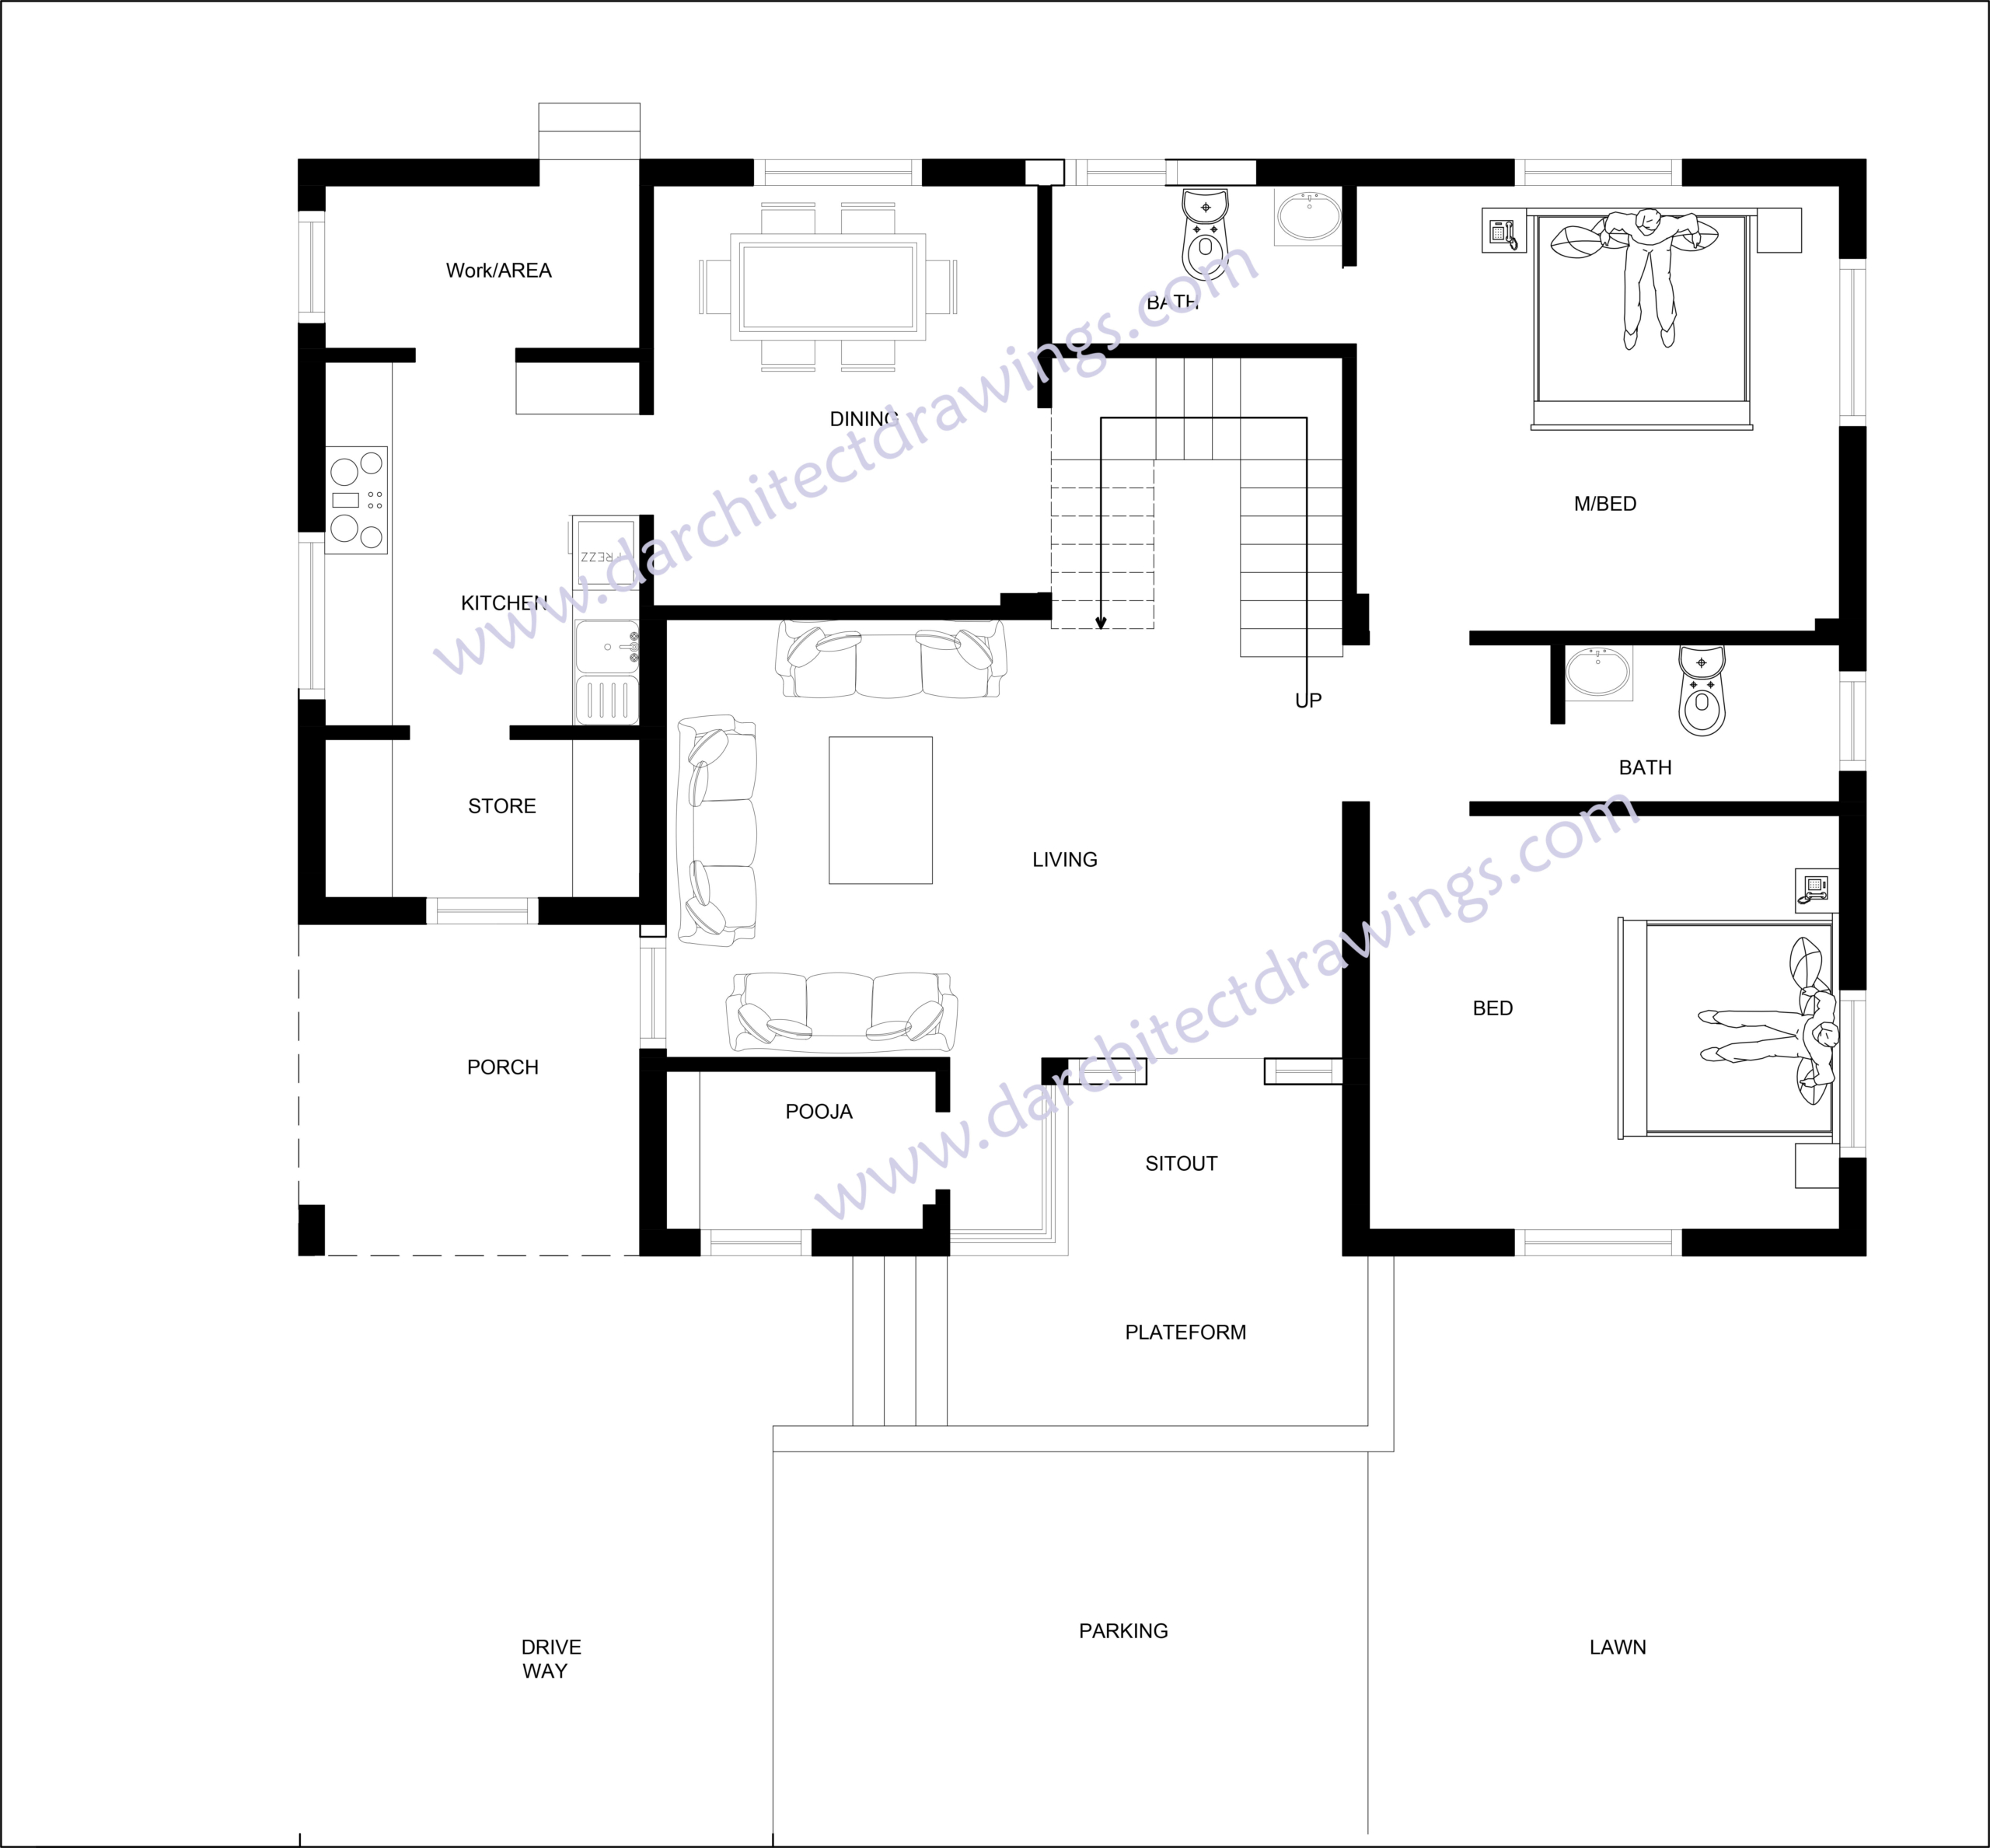 50*40 house map